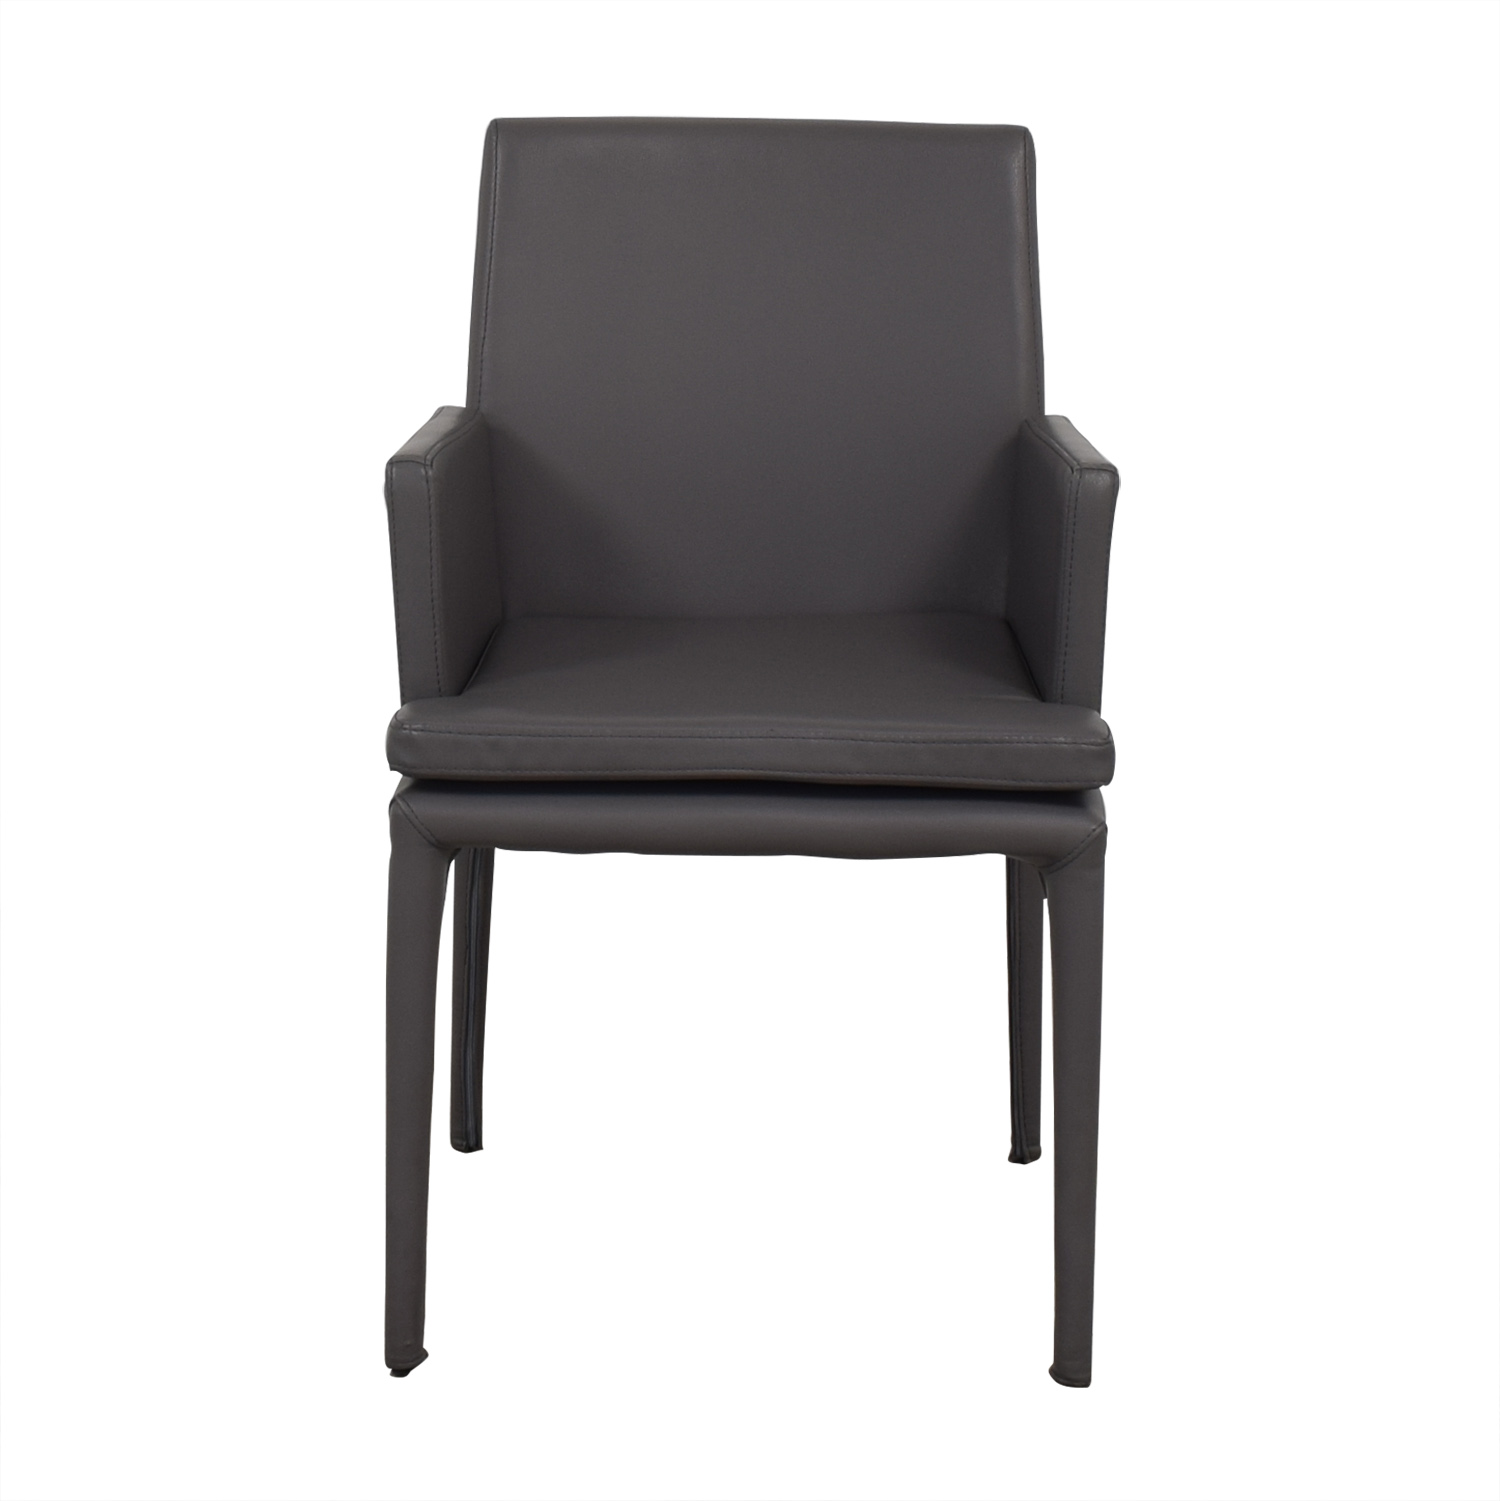 Modani Modani Camille Dining Chair nj